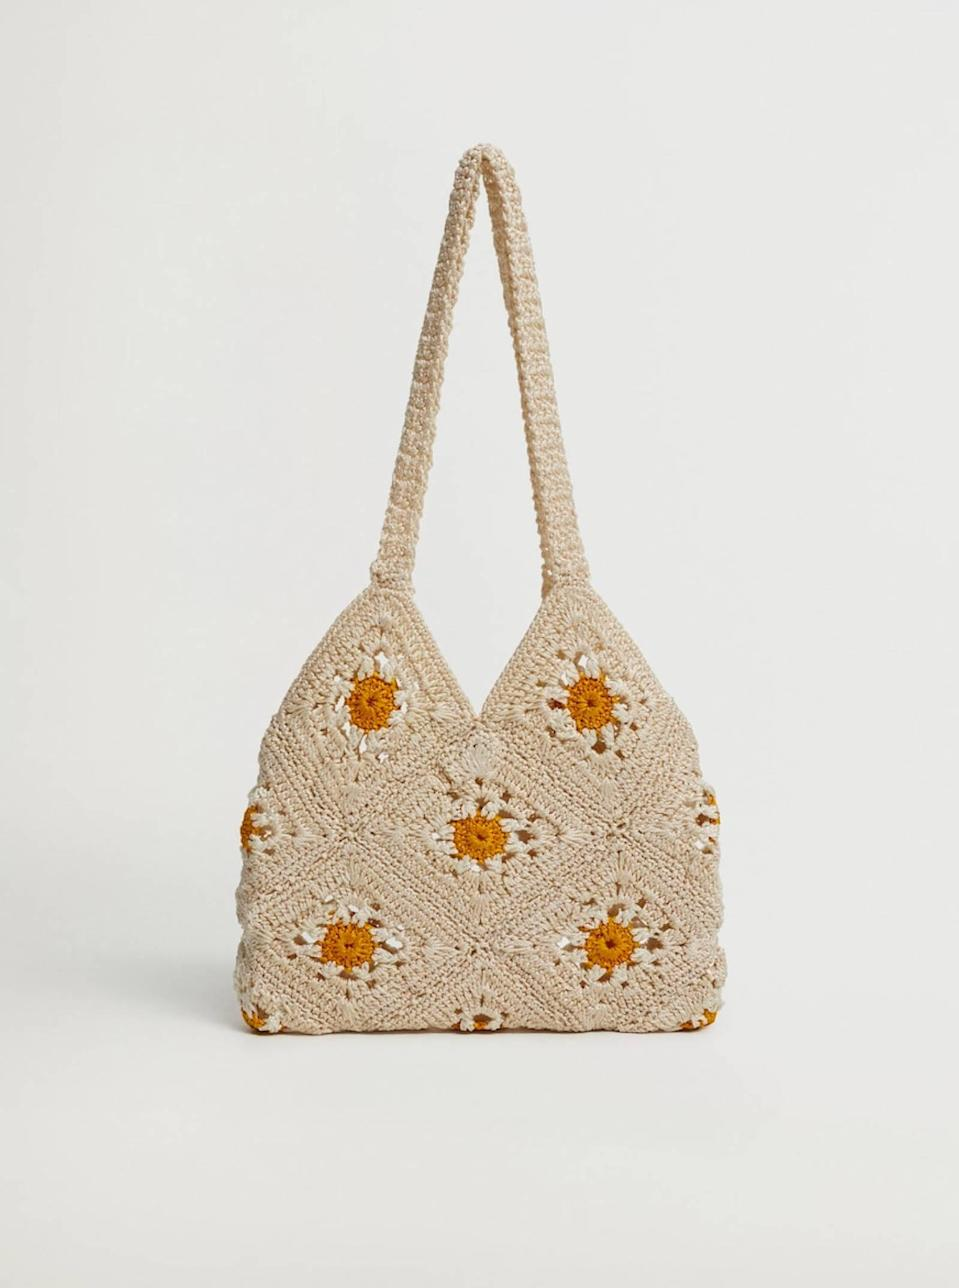 """To start out on a subtle note, let's take a moment to admire this beige-and-gold crochet bag that'll pair perfectly with all of your favorite <a href=""""https://www.glamour.com/gallery/things-to-buy-through-glamour-rewards?mbid=synd_yahoo_rss"""" rel=""""nofollow noopener"""" target=""""_blank"""" data-ylk=""""slk:nap dresses"""" class=""""link rapid-noclick-resp"""">nap dresses</a>. $40, Mango. <a href=""""https://shop.mango.com/us/women/bags-handbags/floral-crochet-bag_87074753.html"""" rel=""""nofollow noopener"""" target=""""_blank"""" data-ylk=""""slk:Get it now!"""" class=""""link rapid-noclick-resp"""">Get it now!</a>"""